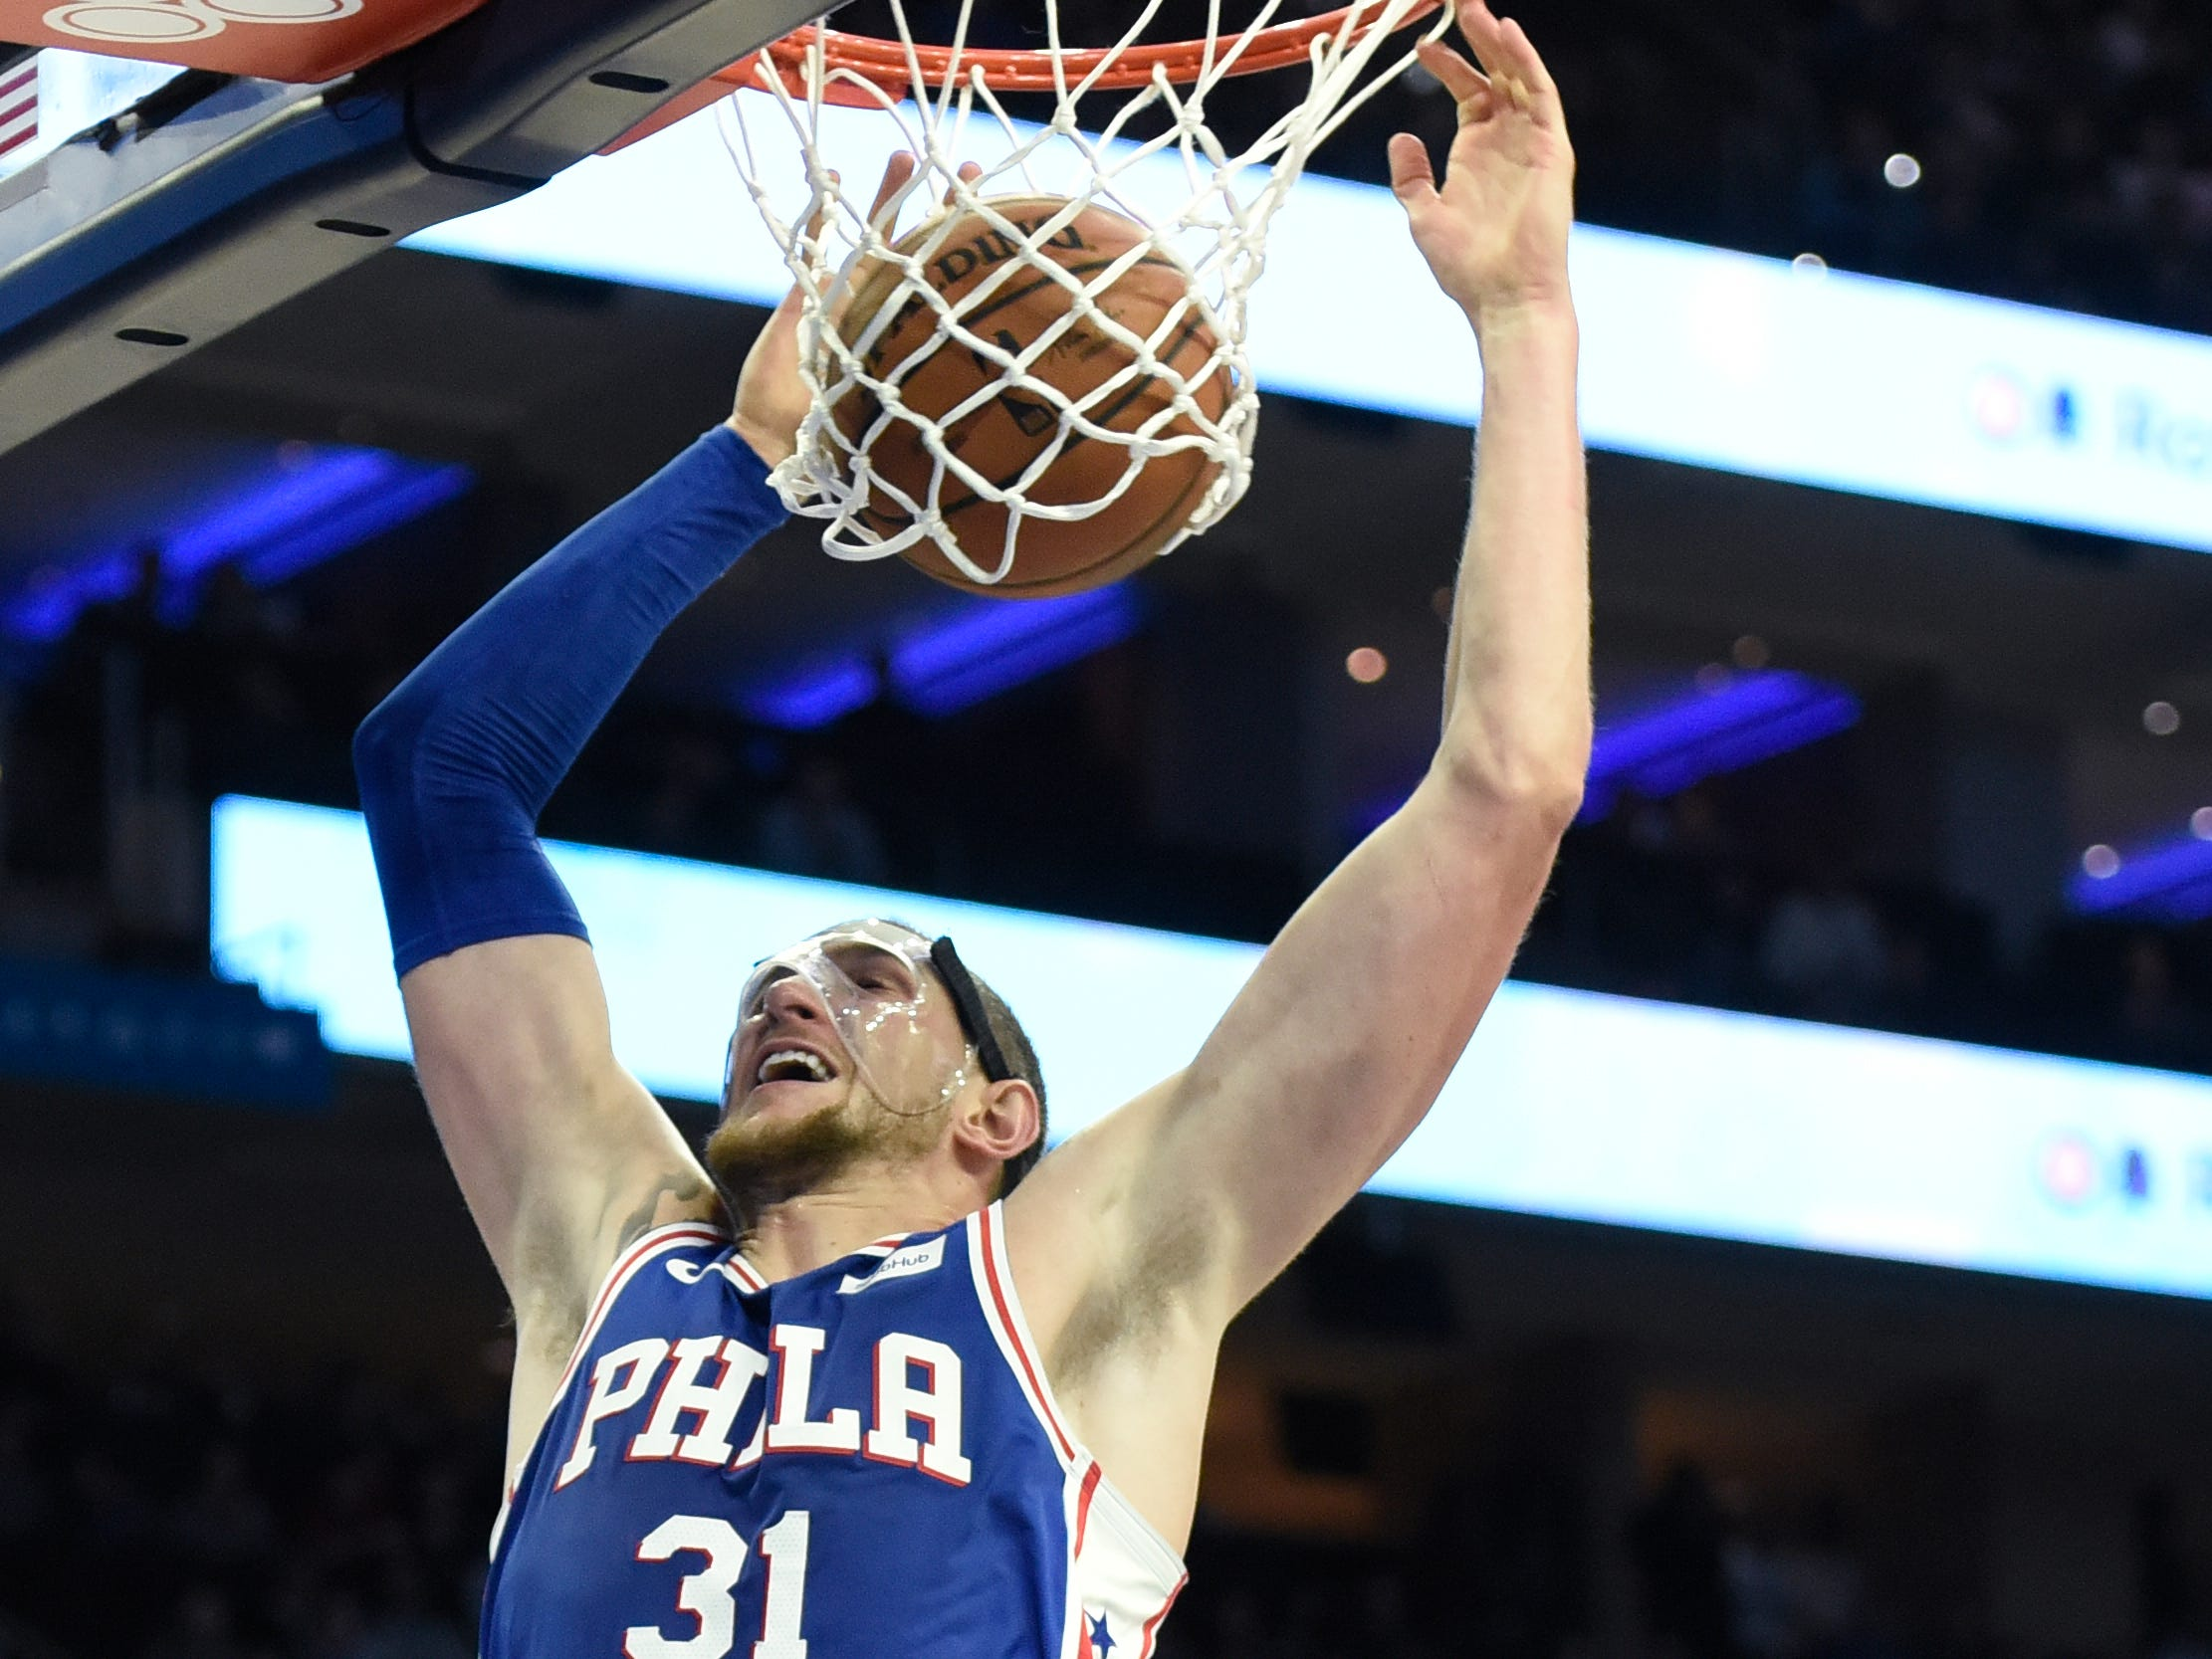 Philadelphia 76ers' Mike Muscala (31) dunks the ball as Phoenix Suns' TJ Warren (12) looks on in second half of an NBA basketball game, Monday, Nov. 19, 2018, in Philadelphia. The 76ers beat the Suns 119-114. (AP Photo/Michael Perez)